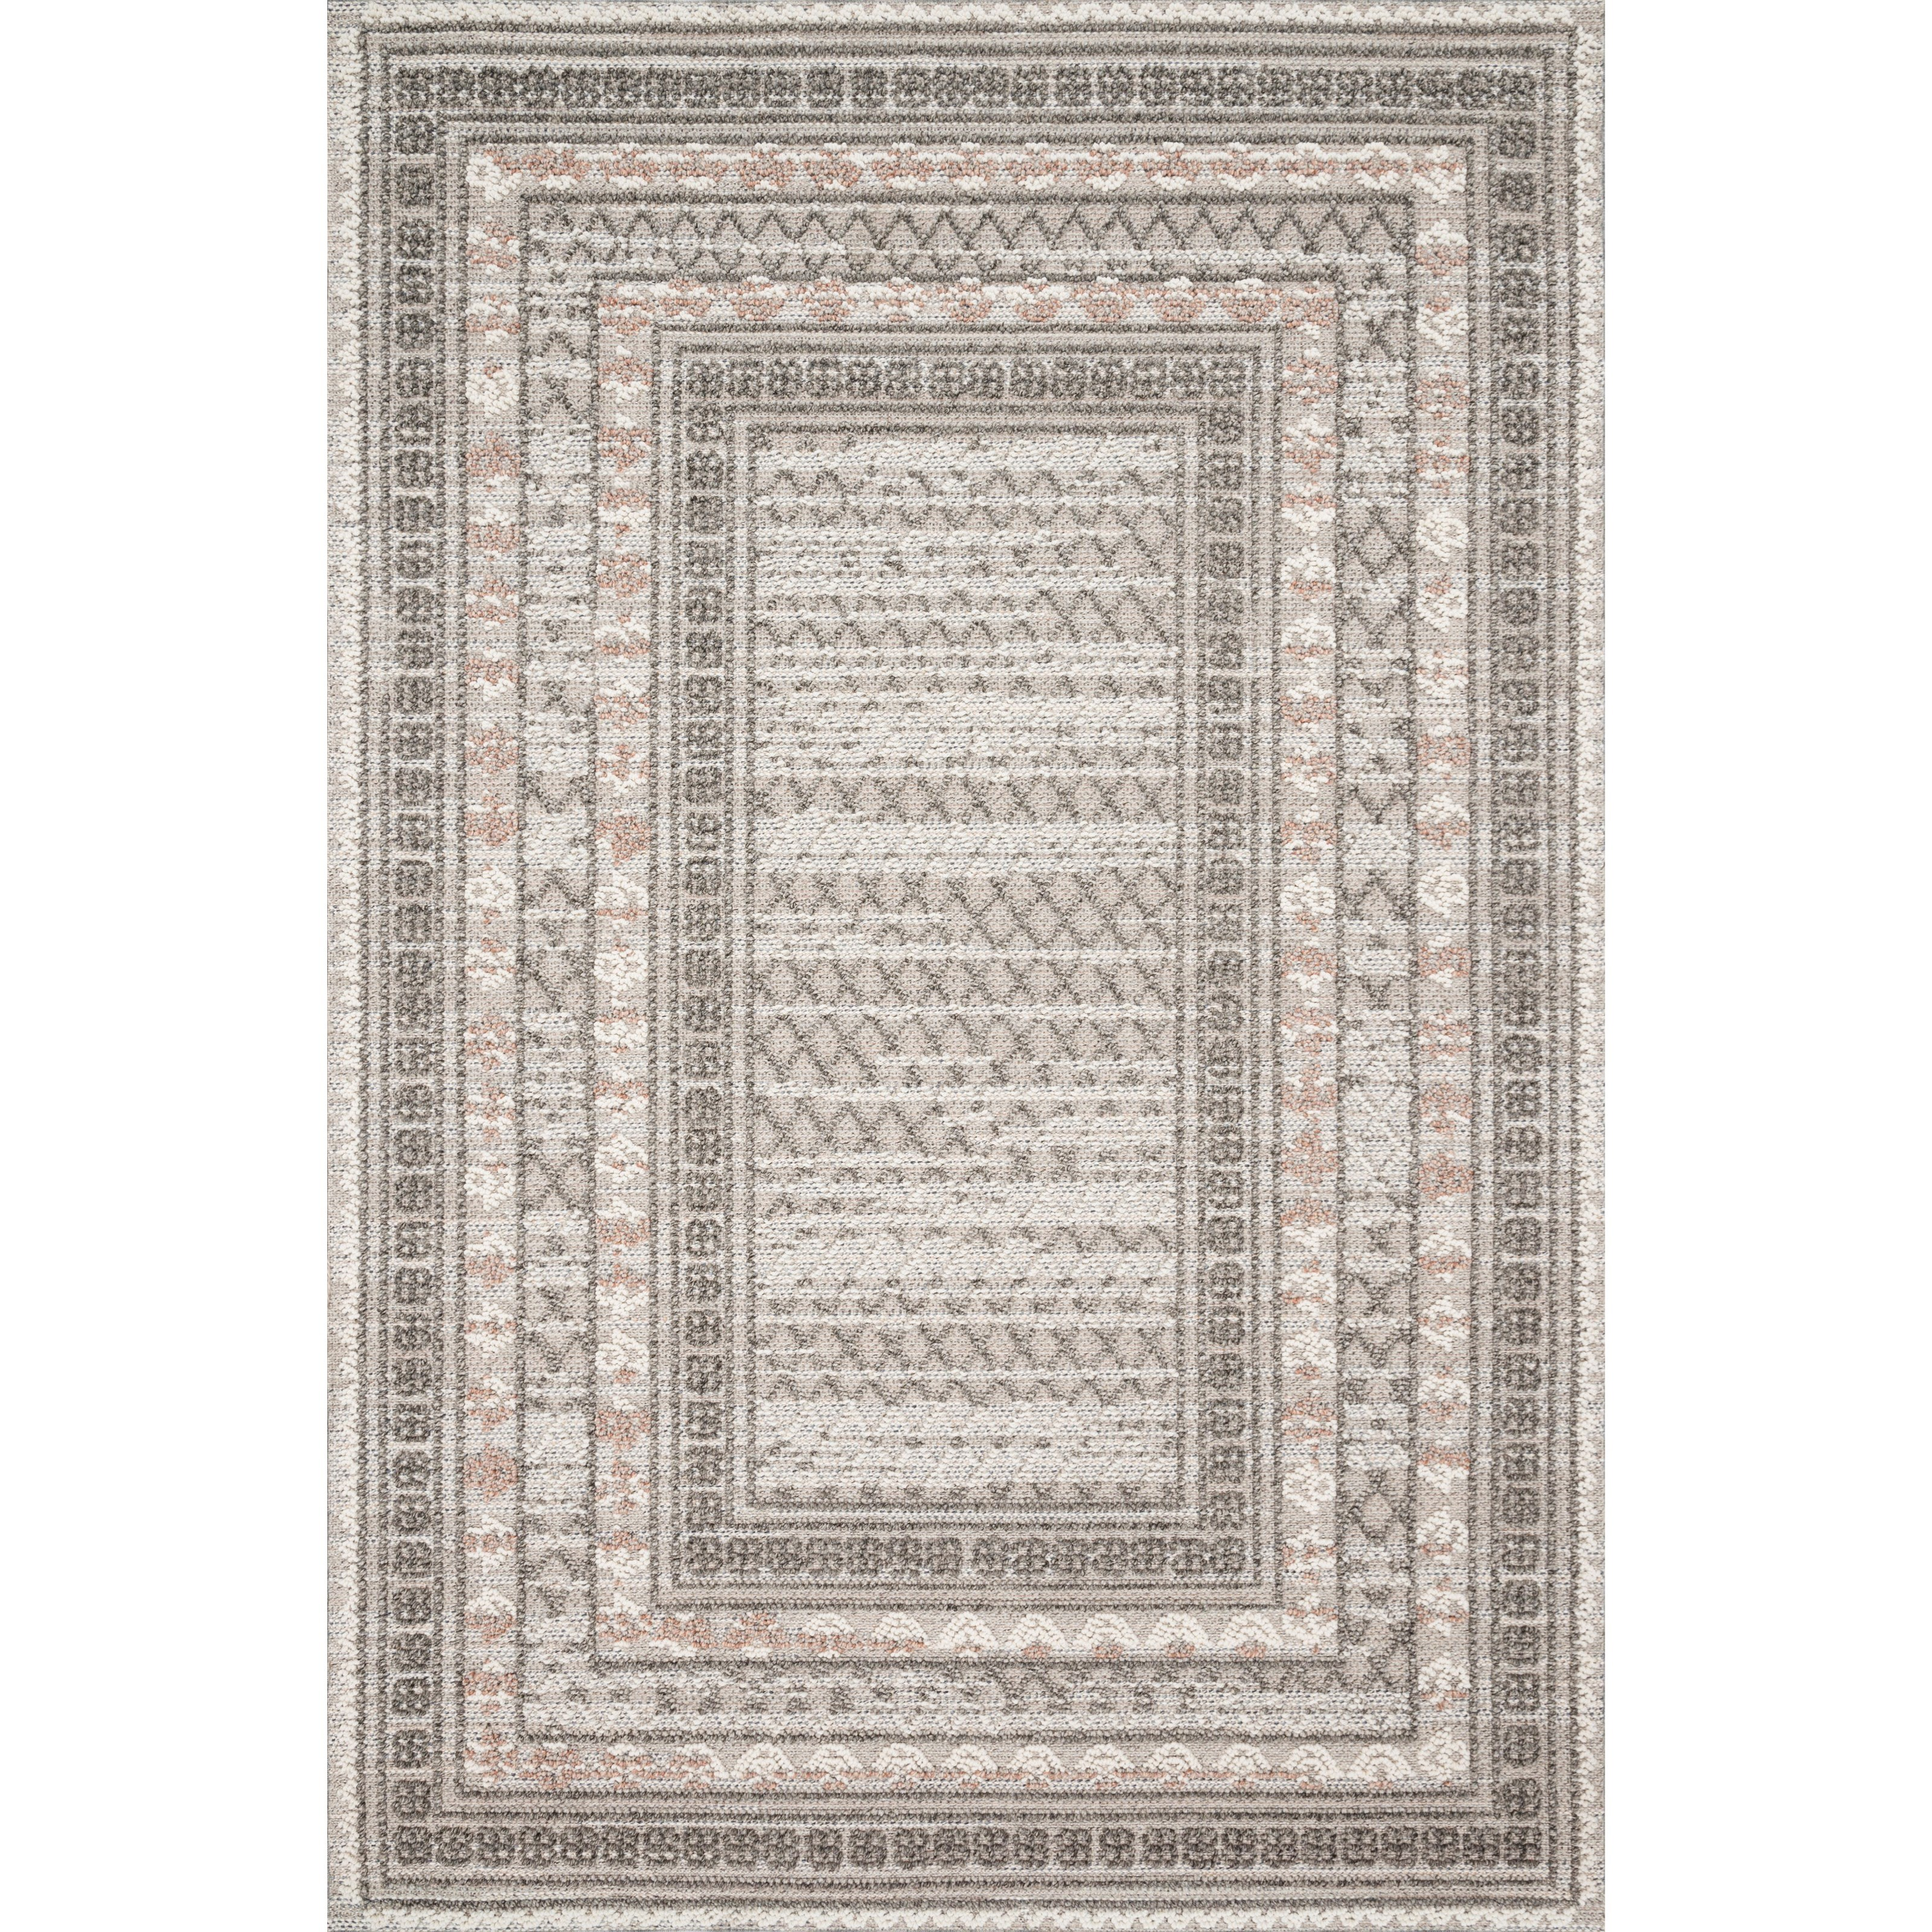 """Cole 5'0"""" x 7'6"""" Grey / Multi Rug by Loloi Rugs at Virginia Furniture Market"""